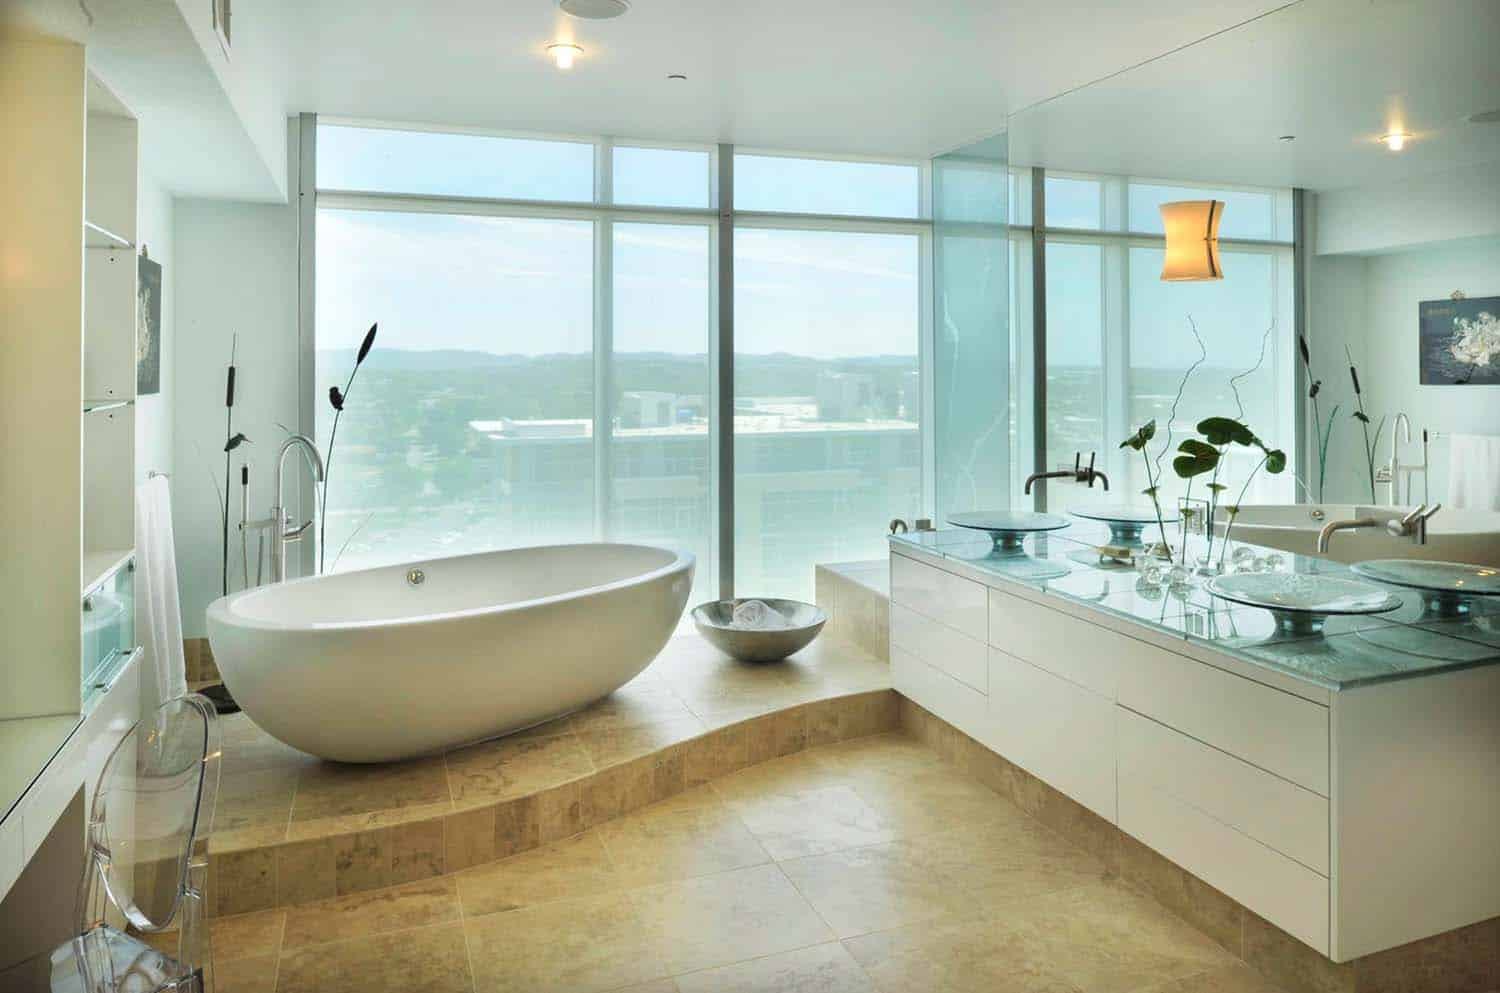 35 Fabulous Freestanding Bathtub Ideas For A Luxurious Soak